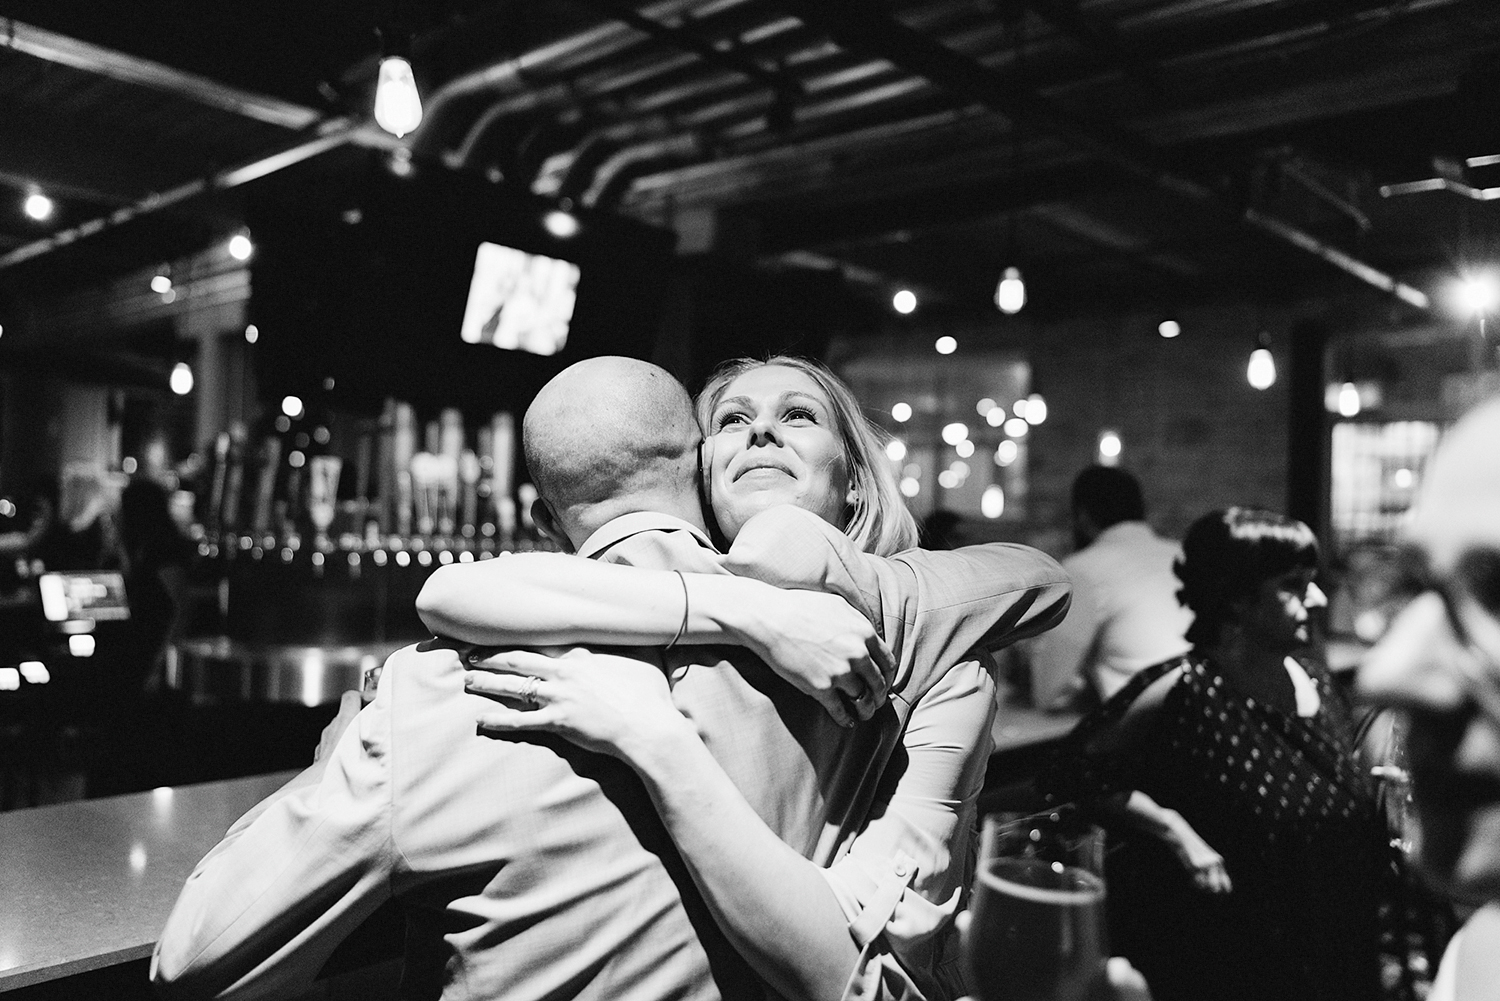 47-liberty-village-wedding-toronto--craft-brewery-wedding-photographer-craft-brewery-alternative-unique-couple-analog-film-candid-documentary-moments-old-toronto-12.jpg